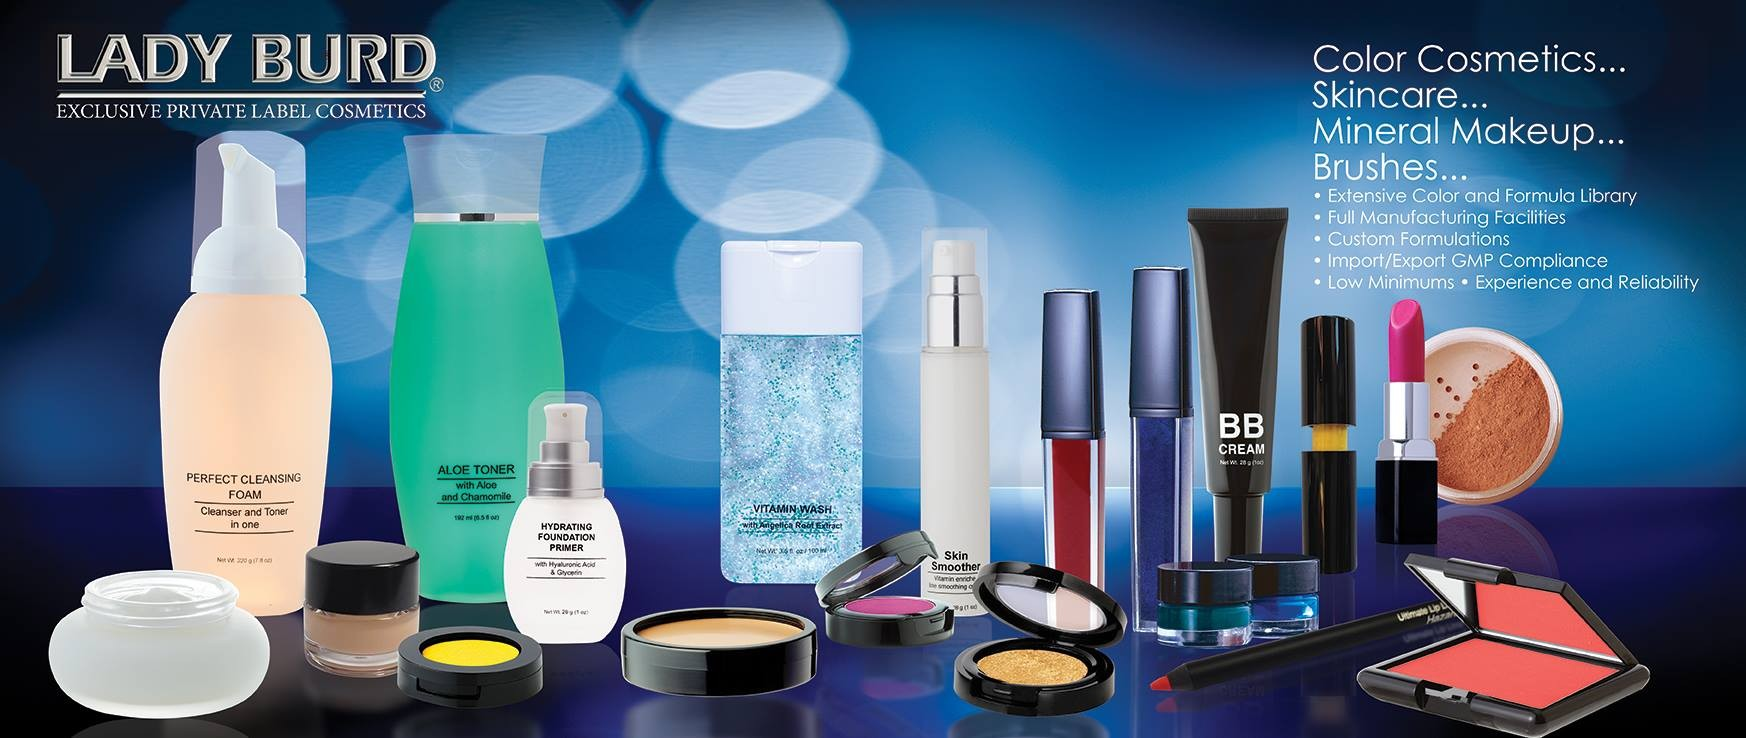 Lady Burd Exclusive Private Label Cosmetics, Inc  | LinkedIn